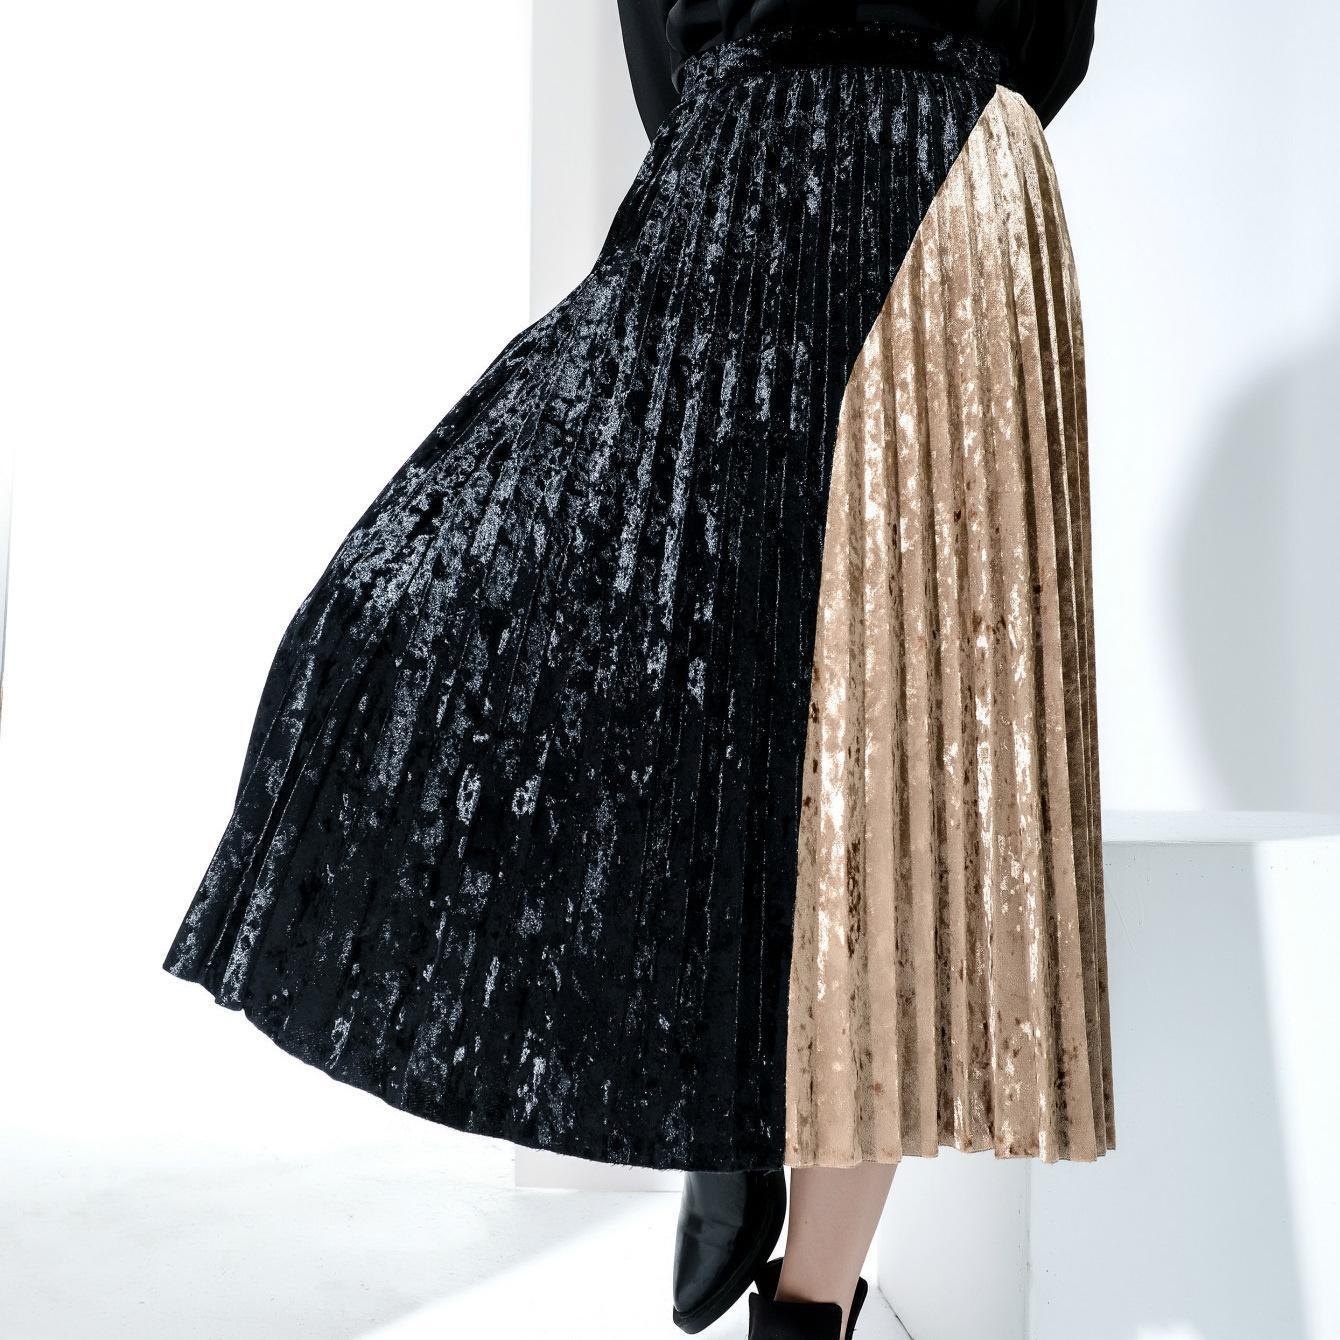 Long Skirts For Women 2018 Diamond Velvet Asymmetric color Saias Na Altura Do Joelho Falda Faldas Largas Mujer Verano